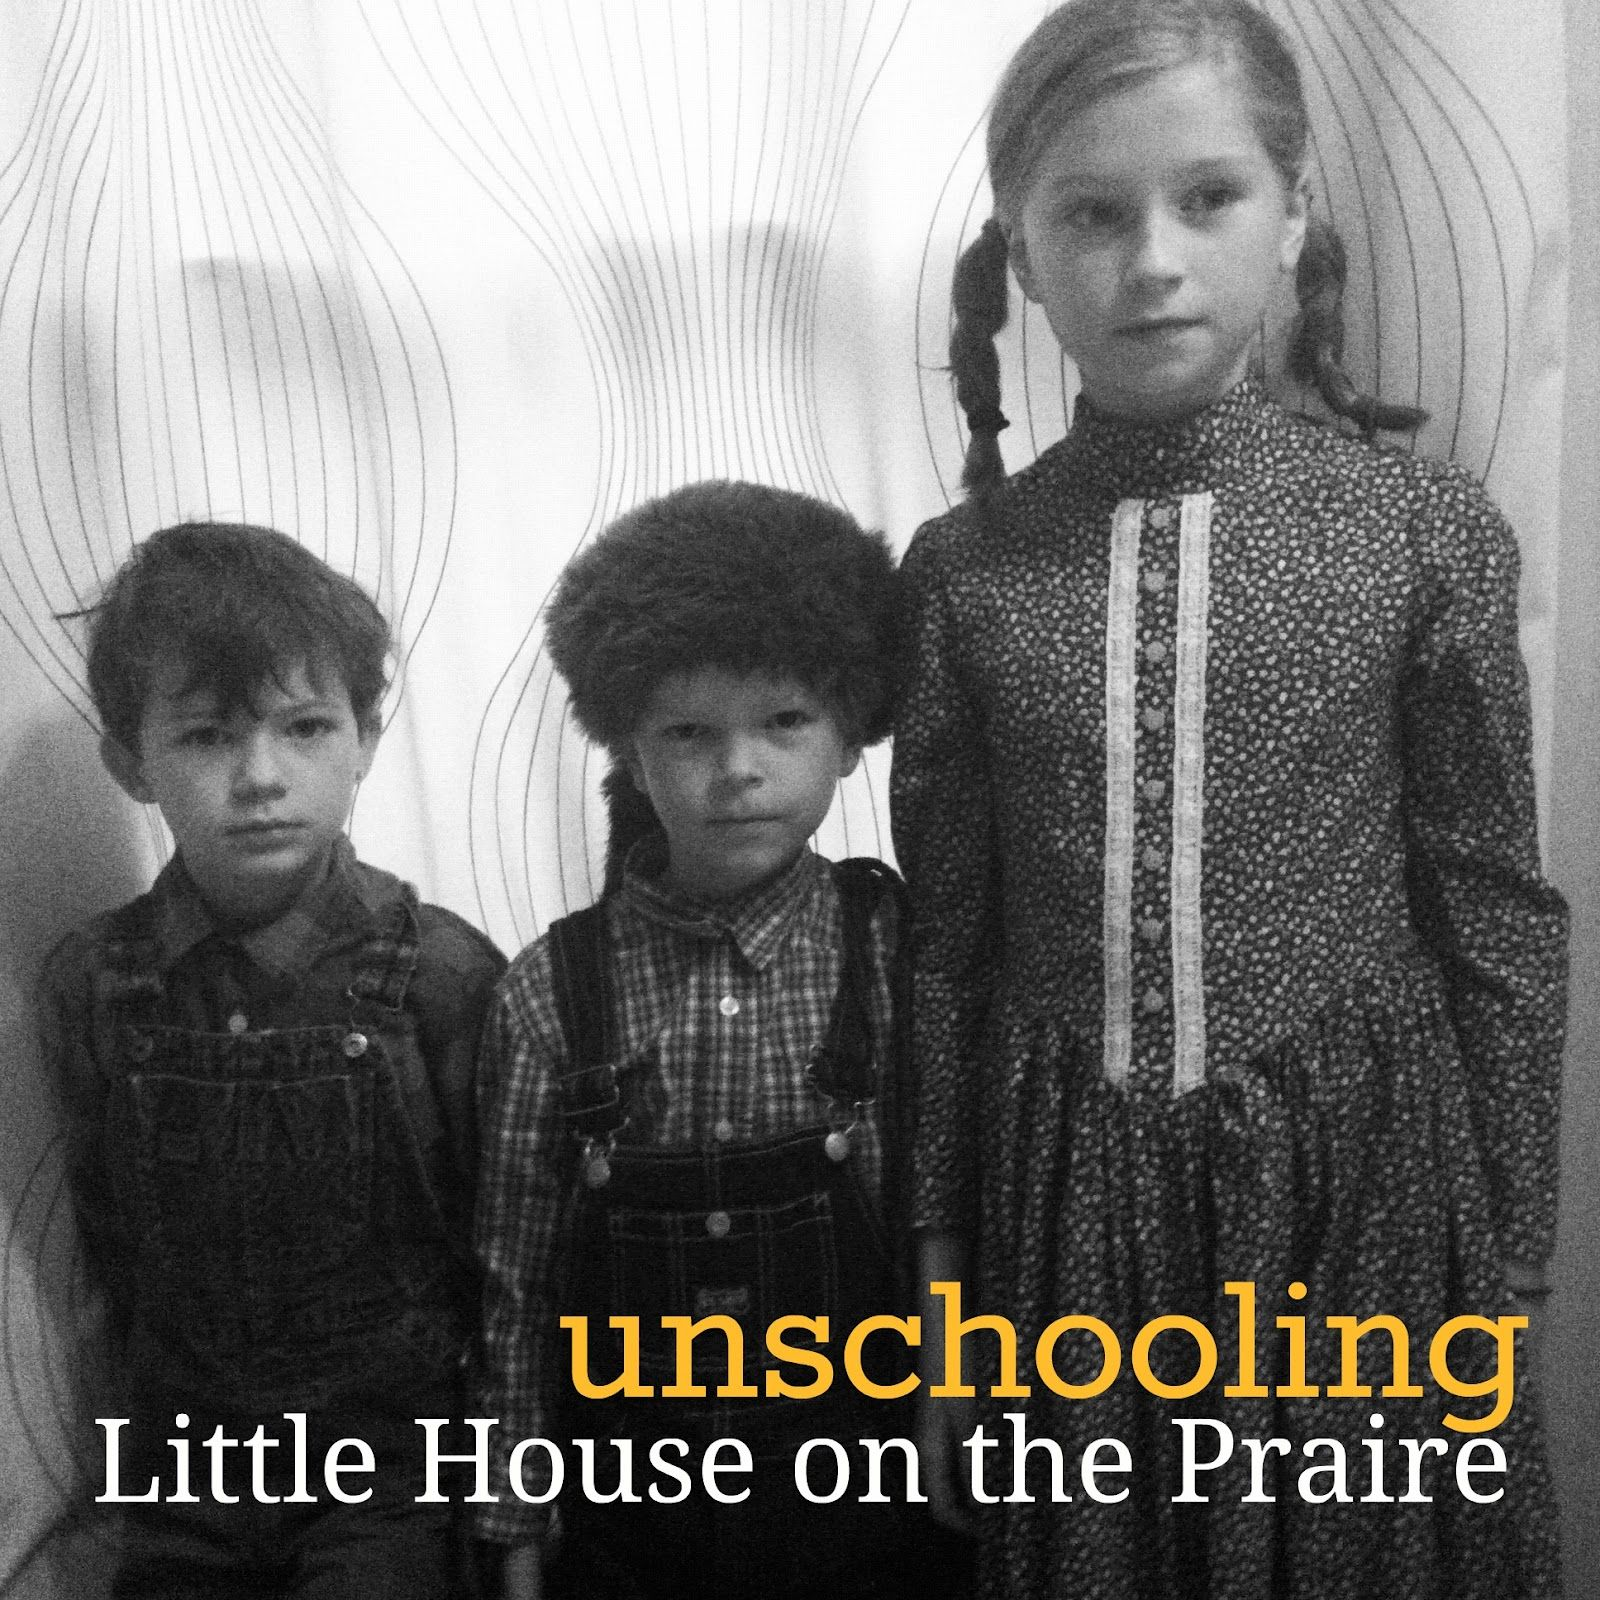 "mamascout: unschooling little house on the prairie ""The beauty of this type of learning is how it organically flows through our life. The Little House thread will weave in and out of our days until they have learned all they need to from it. And then another thread will become more prominent - but they are all always there, making up a rich and strong fabric of wonder and exploration."""